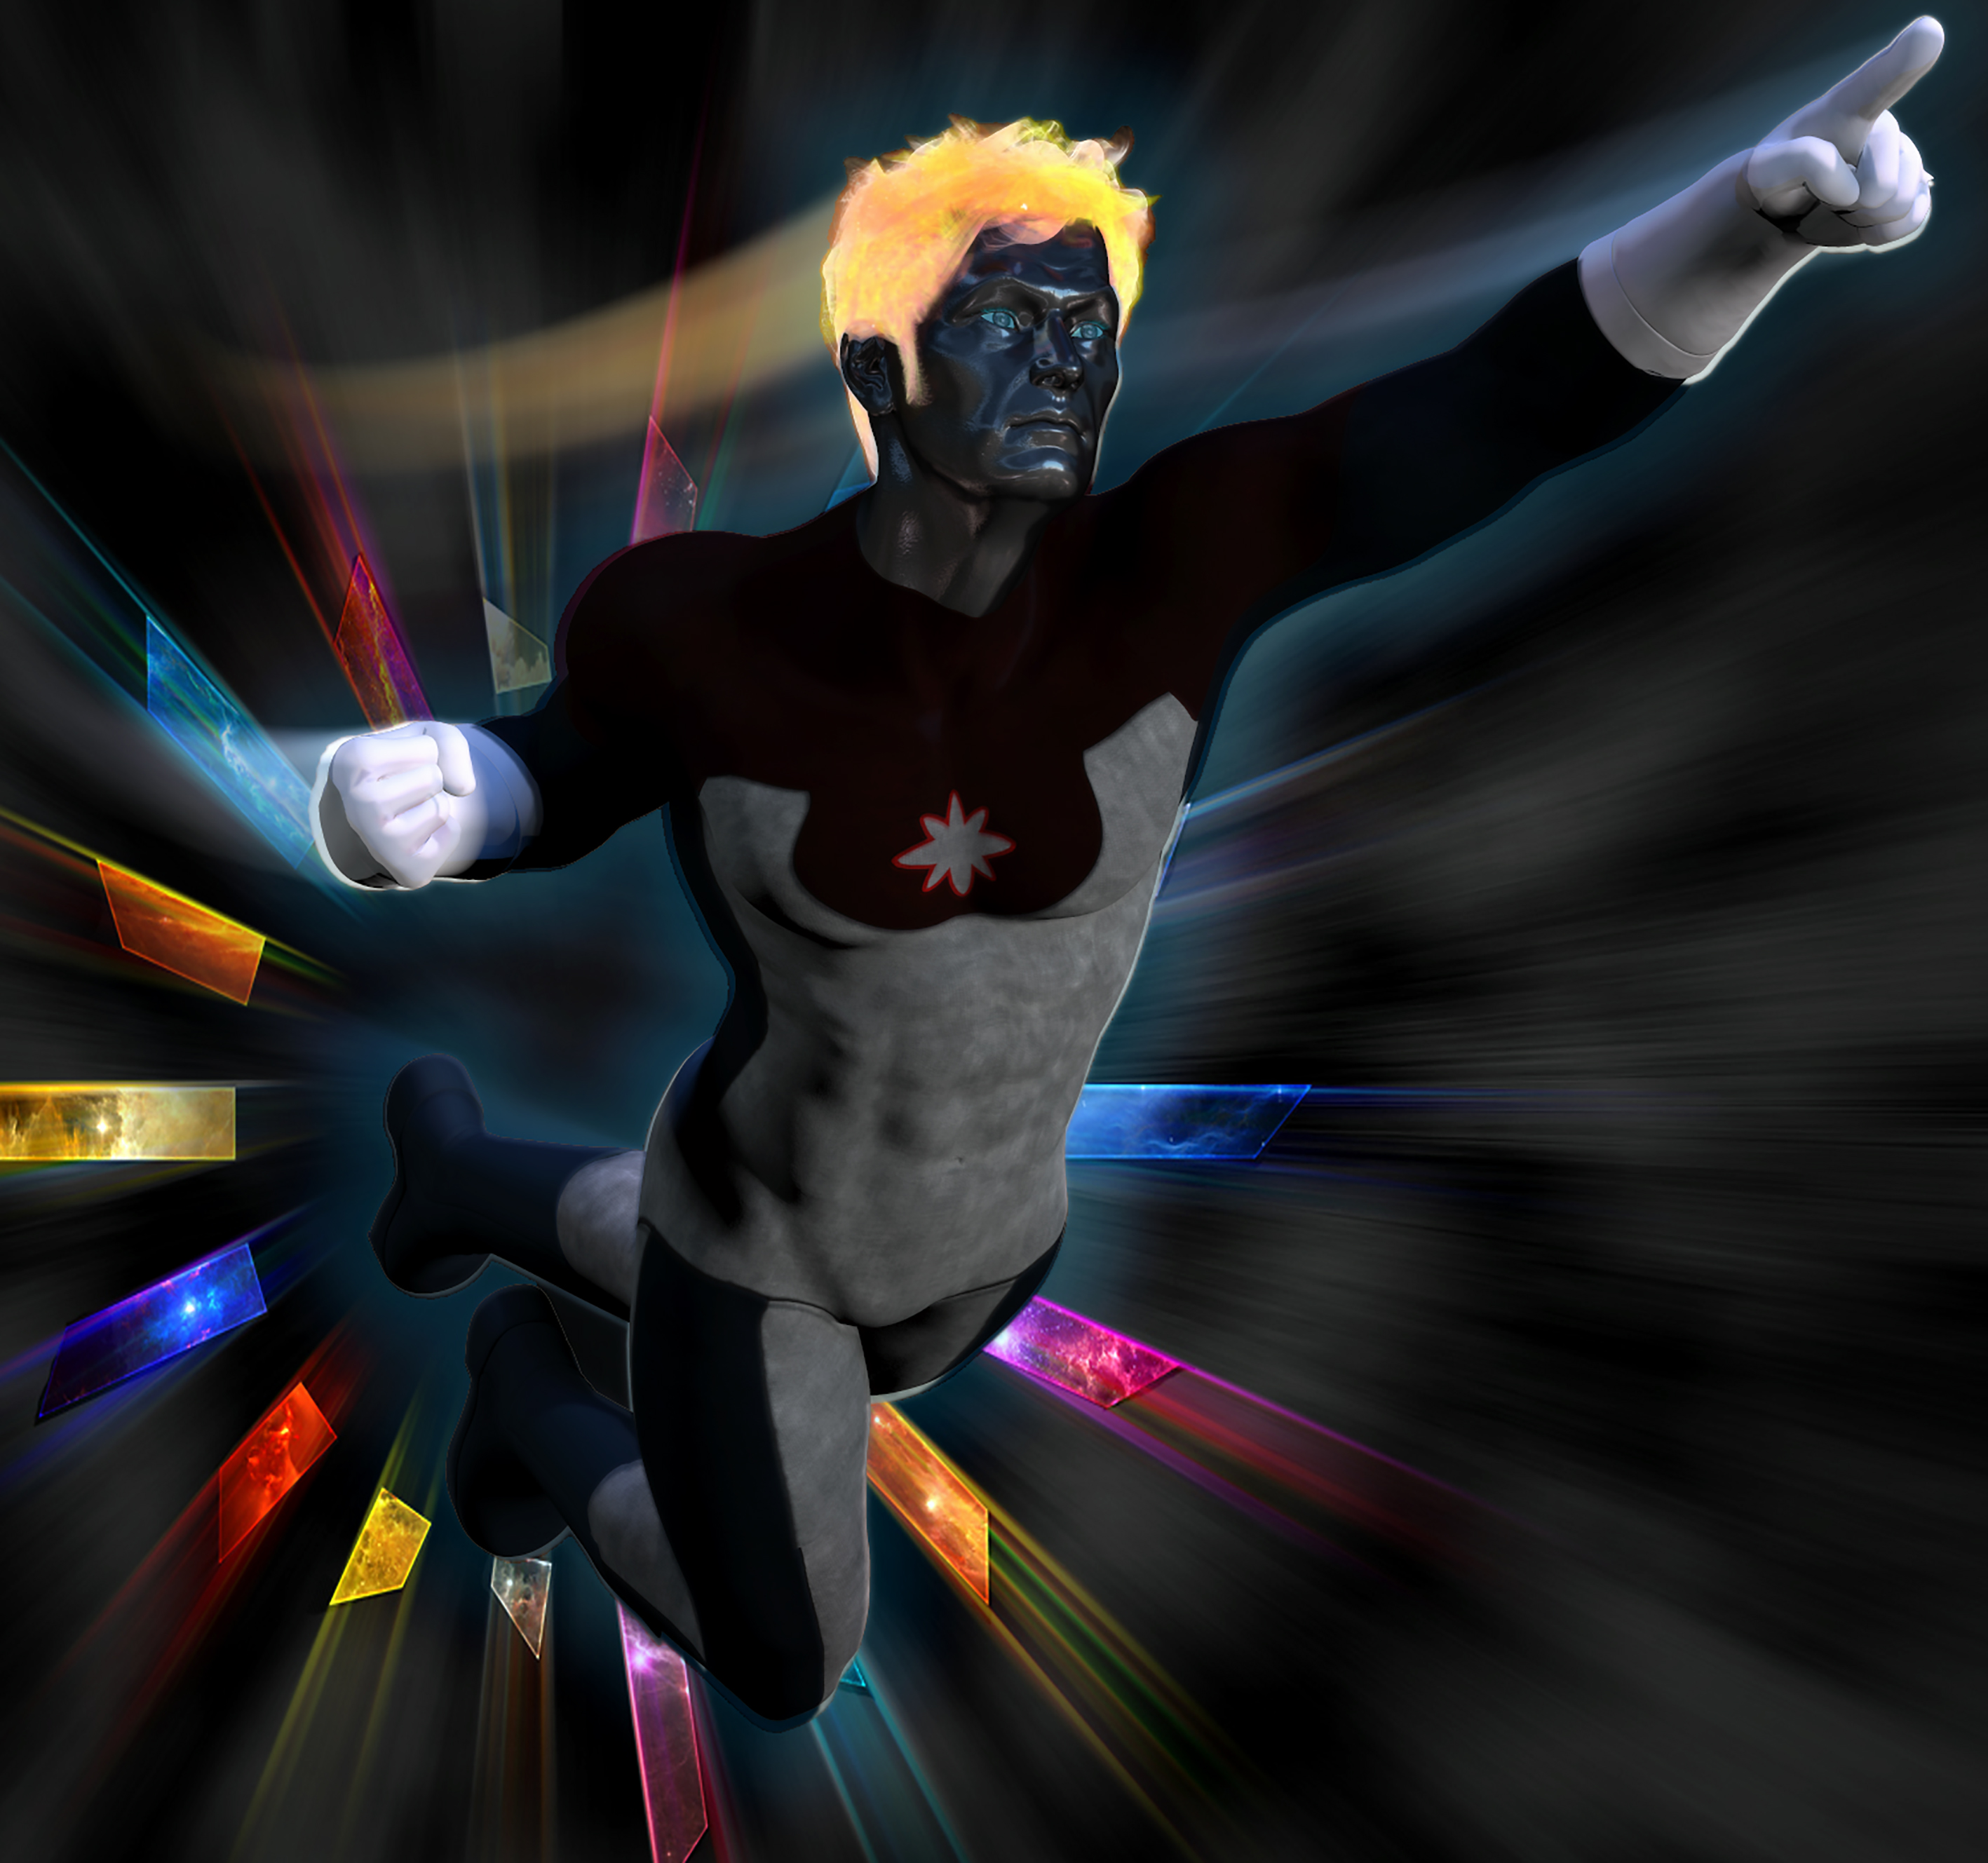 Captain Atom second skin textures for M4 by hiram67